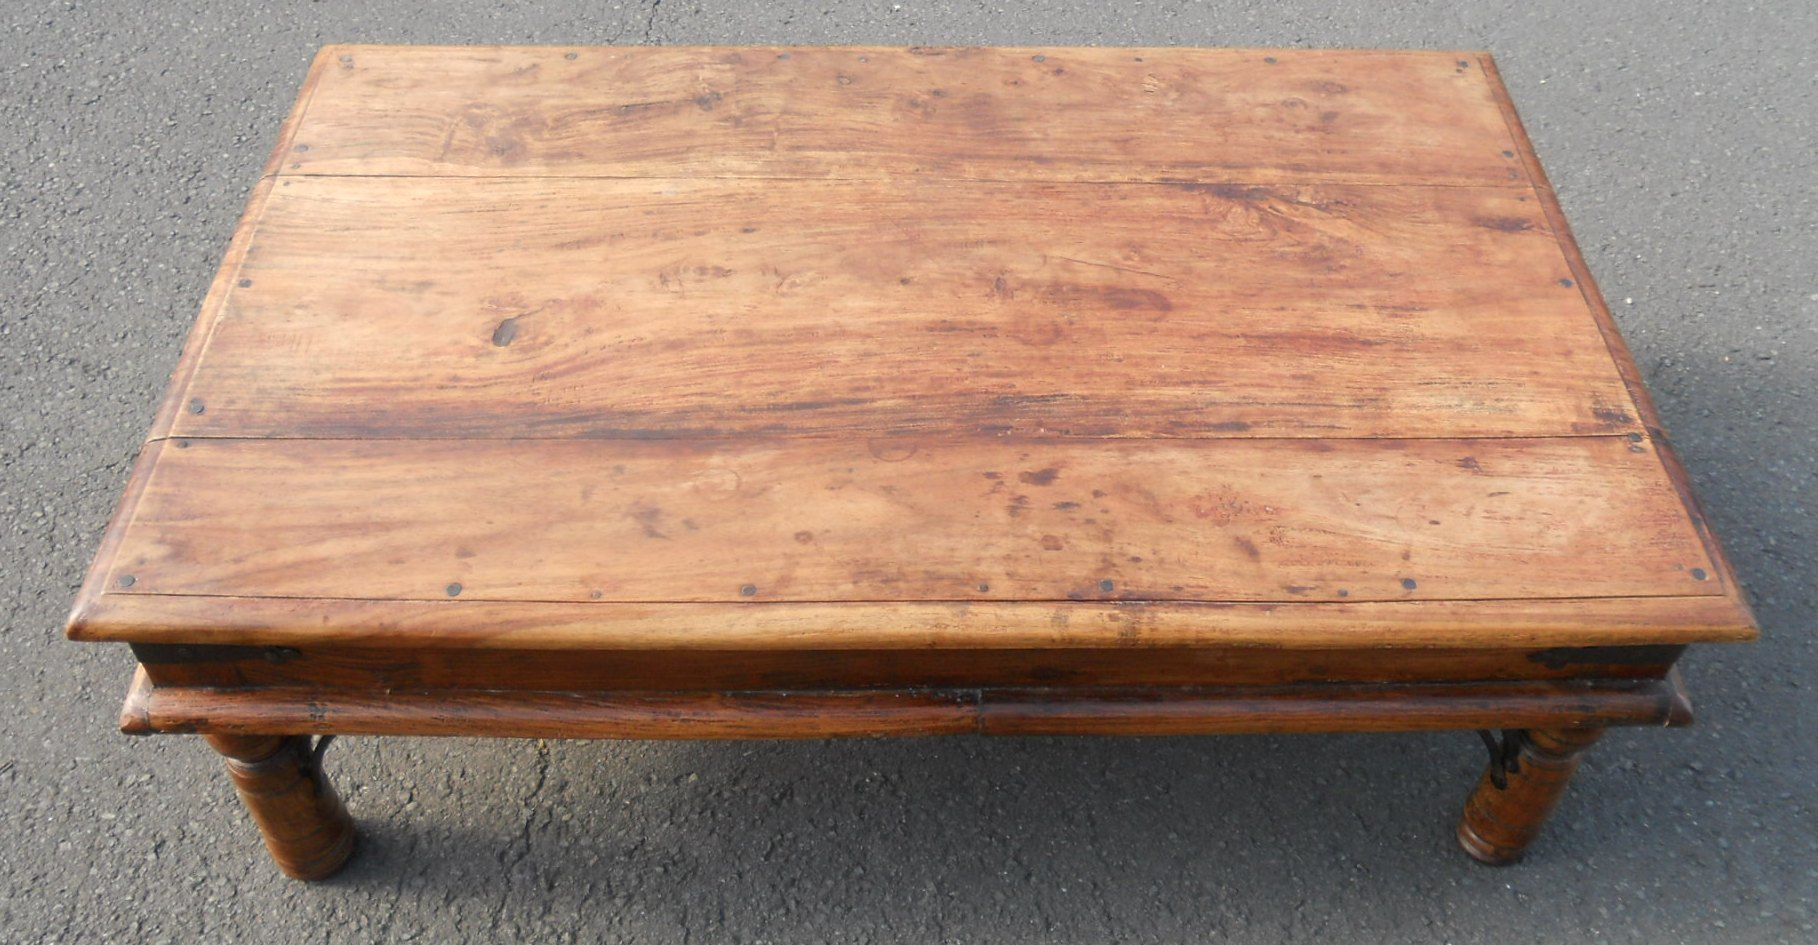 SOLD Large Rustic Wooden Coffee Table : sold large rustic wooden coffee table 2 4529 p from www.harrisonantiquefurniture.co.uk size 1818 x 945 jpeg 278kB